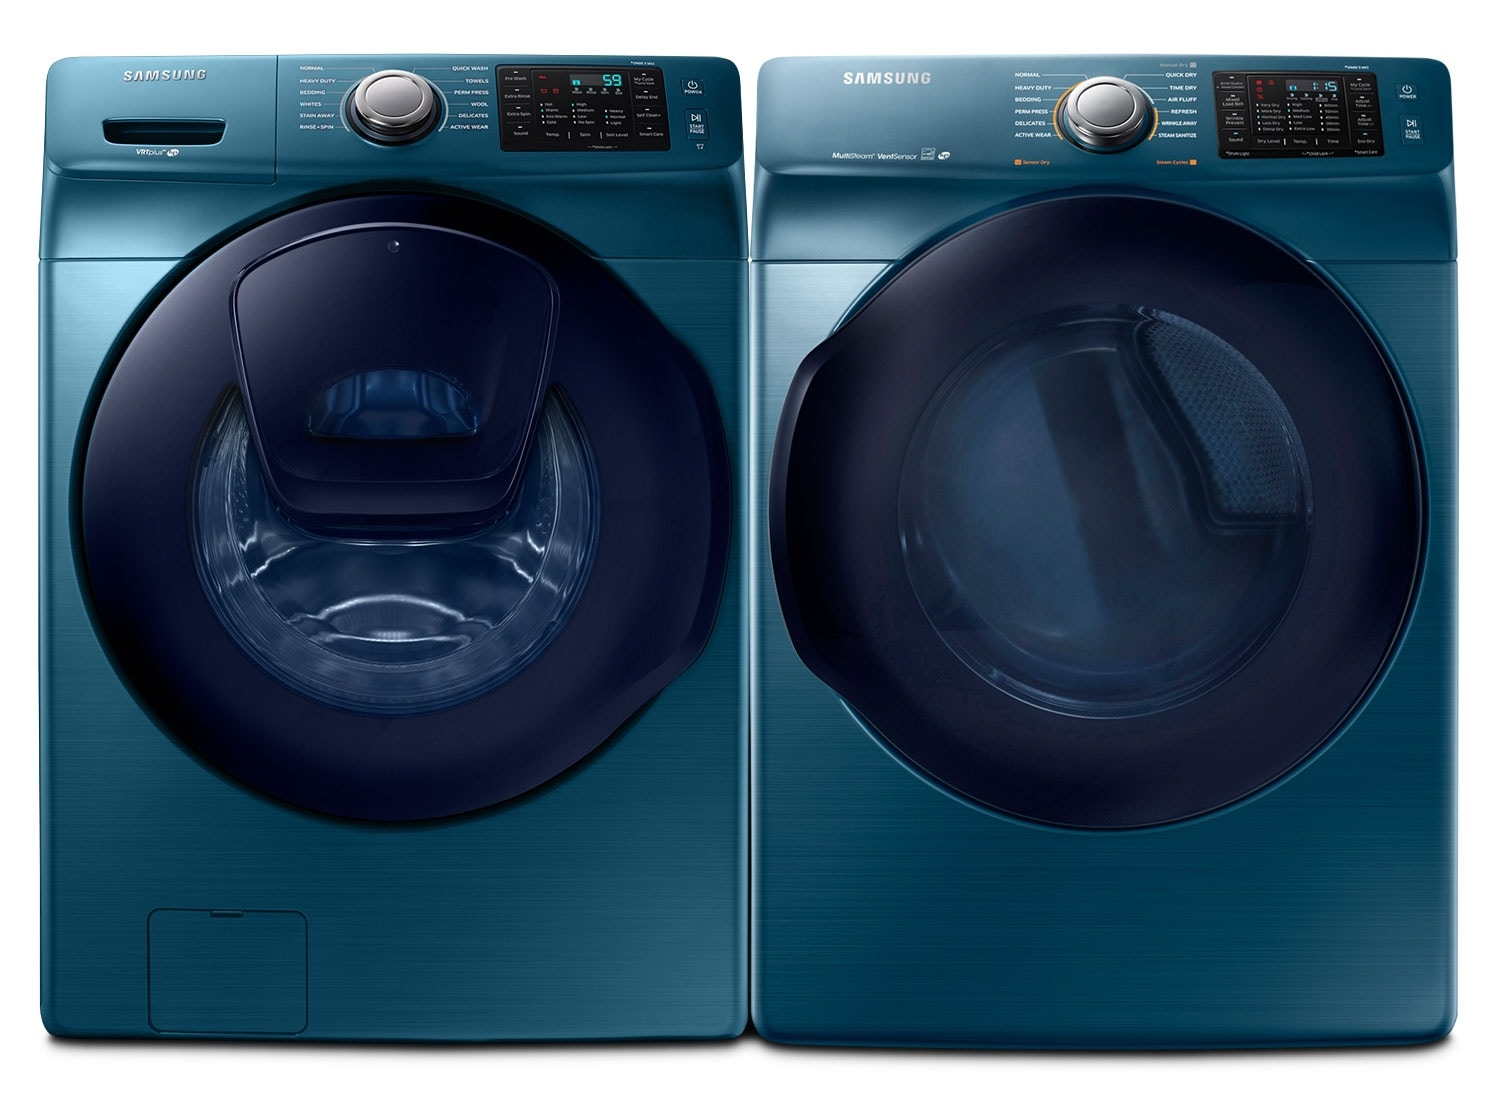 Washers and Dryers - Samsung 5.2 Cu. Ft. Front-Load Washer and 7.5 Cu. Ft. Electric Dryer – Sapphire Blue